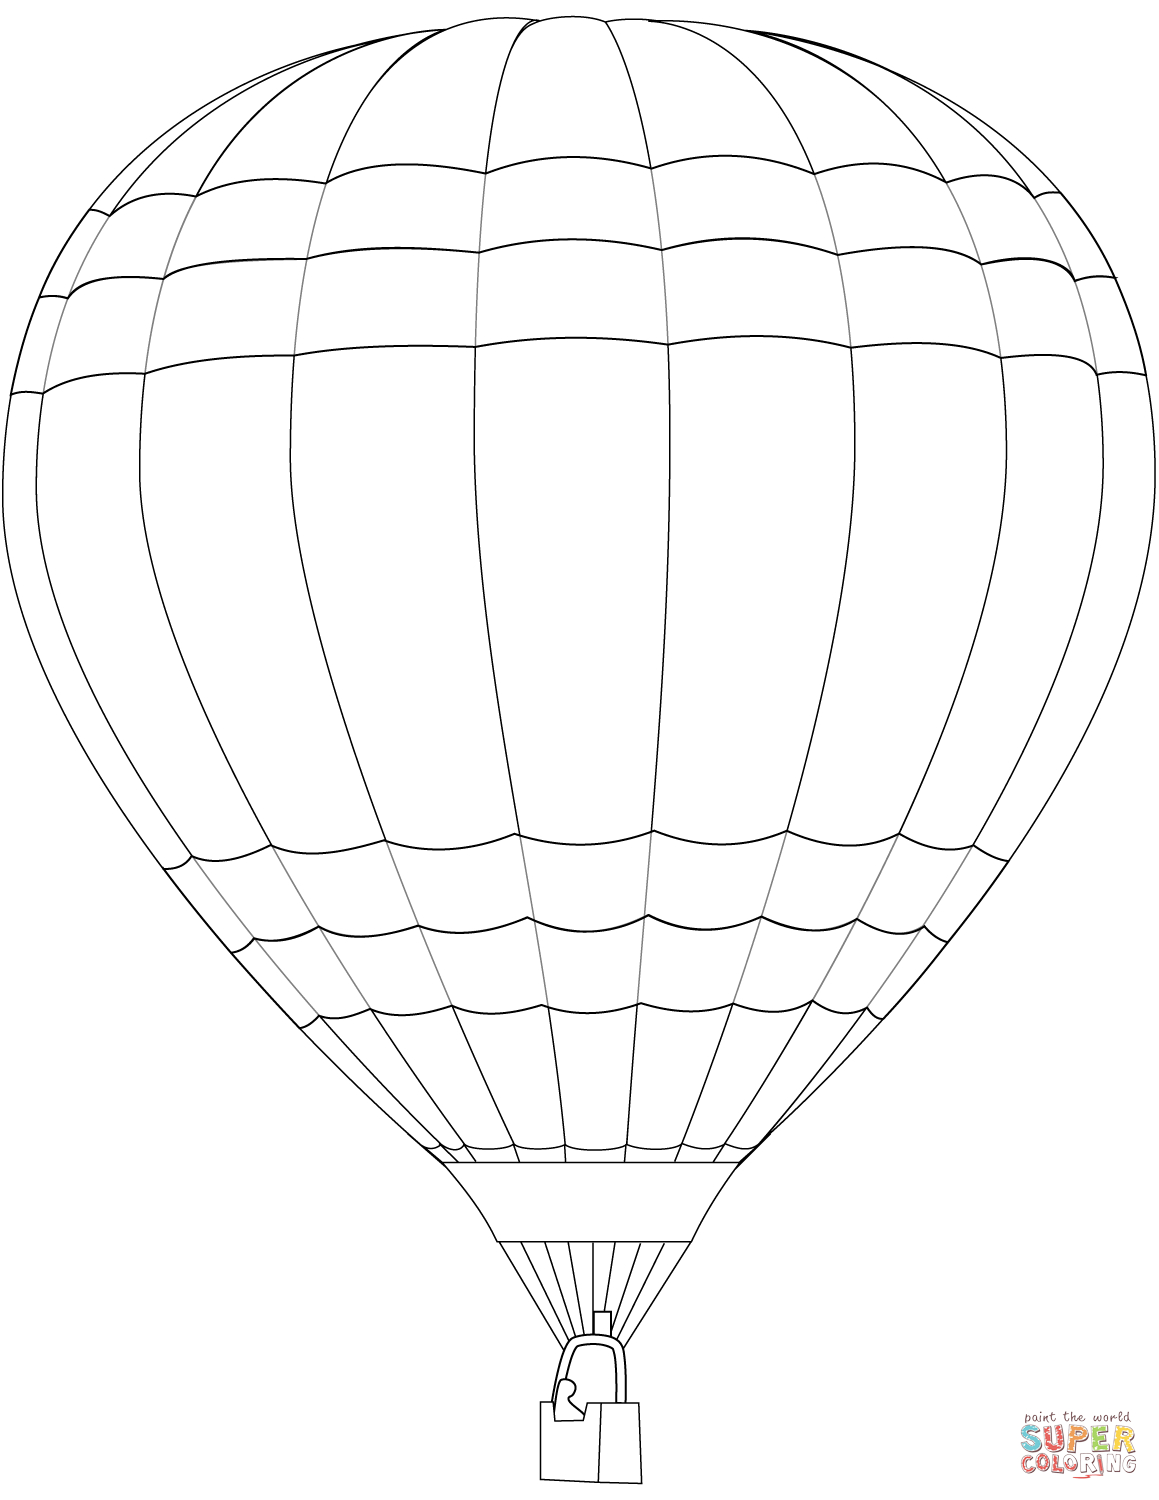 Hot Air Balloon Coloring Page to Print Of Hot Air Balloon Coloring Page Collection